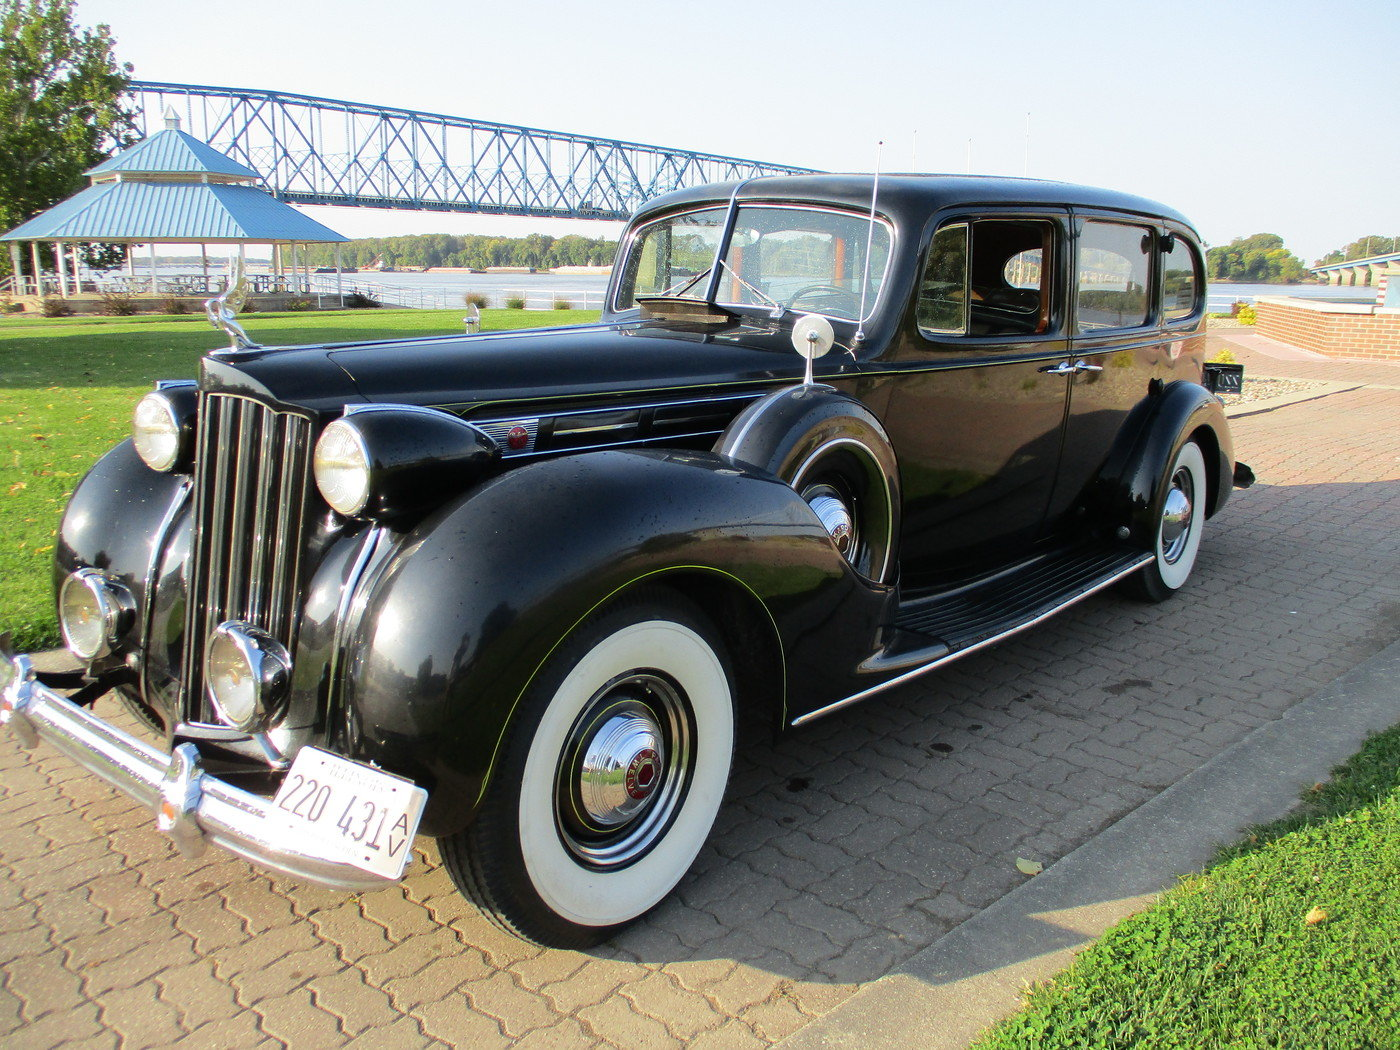 1939 Packard Model 1708 12 Cylinder Limousine For Sale (picture 1 of 12)